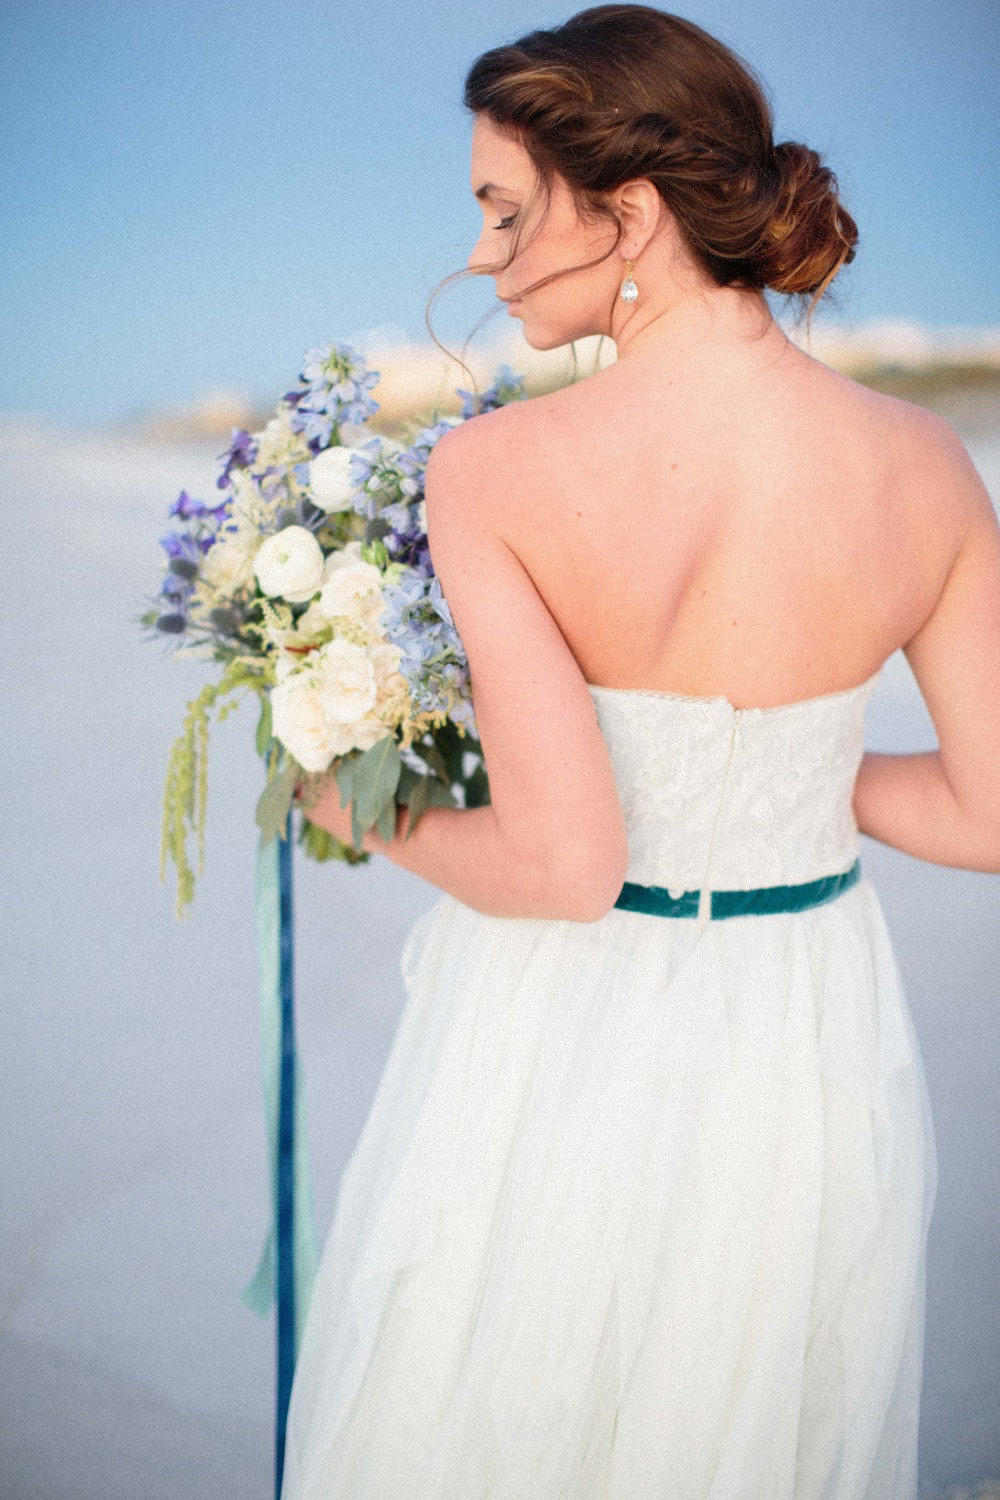 Ais-Portraits-ivey-weddings-and-events-ivory-and-beau-bridal-boutique-sunrise-wedding-sunrise-bridal-session-blue-dress-rebecca-schoneveld-wedding-dress-blue-velvet-wedding-beach-wedding-savannah-bridal-boutique-savannah-wedding-4.jpg